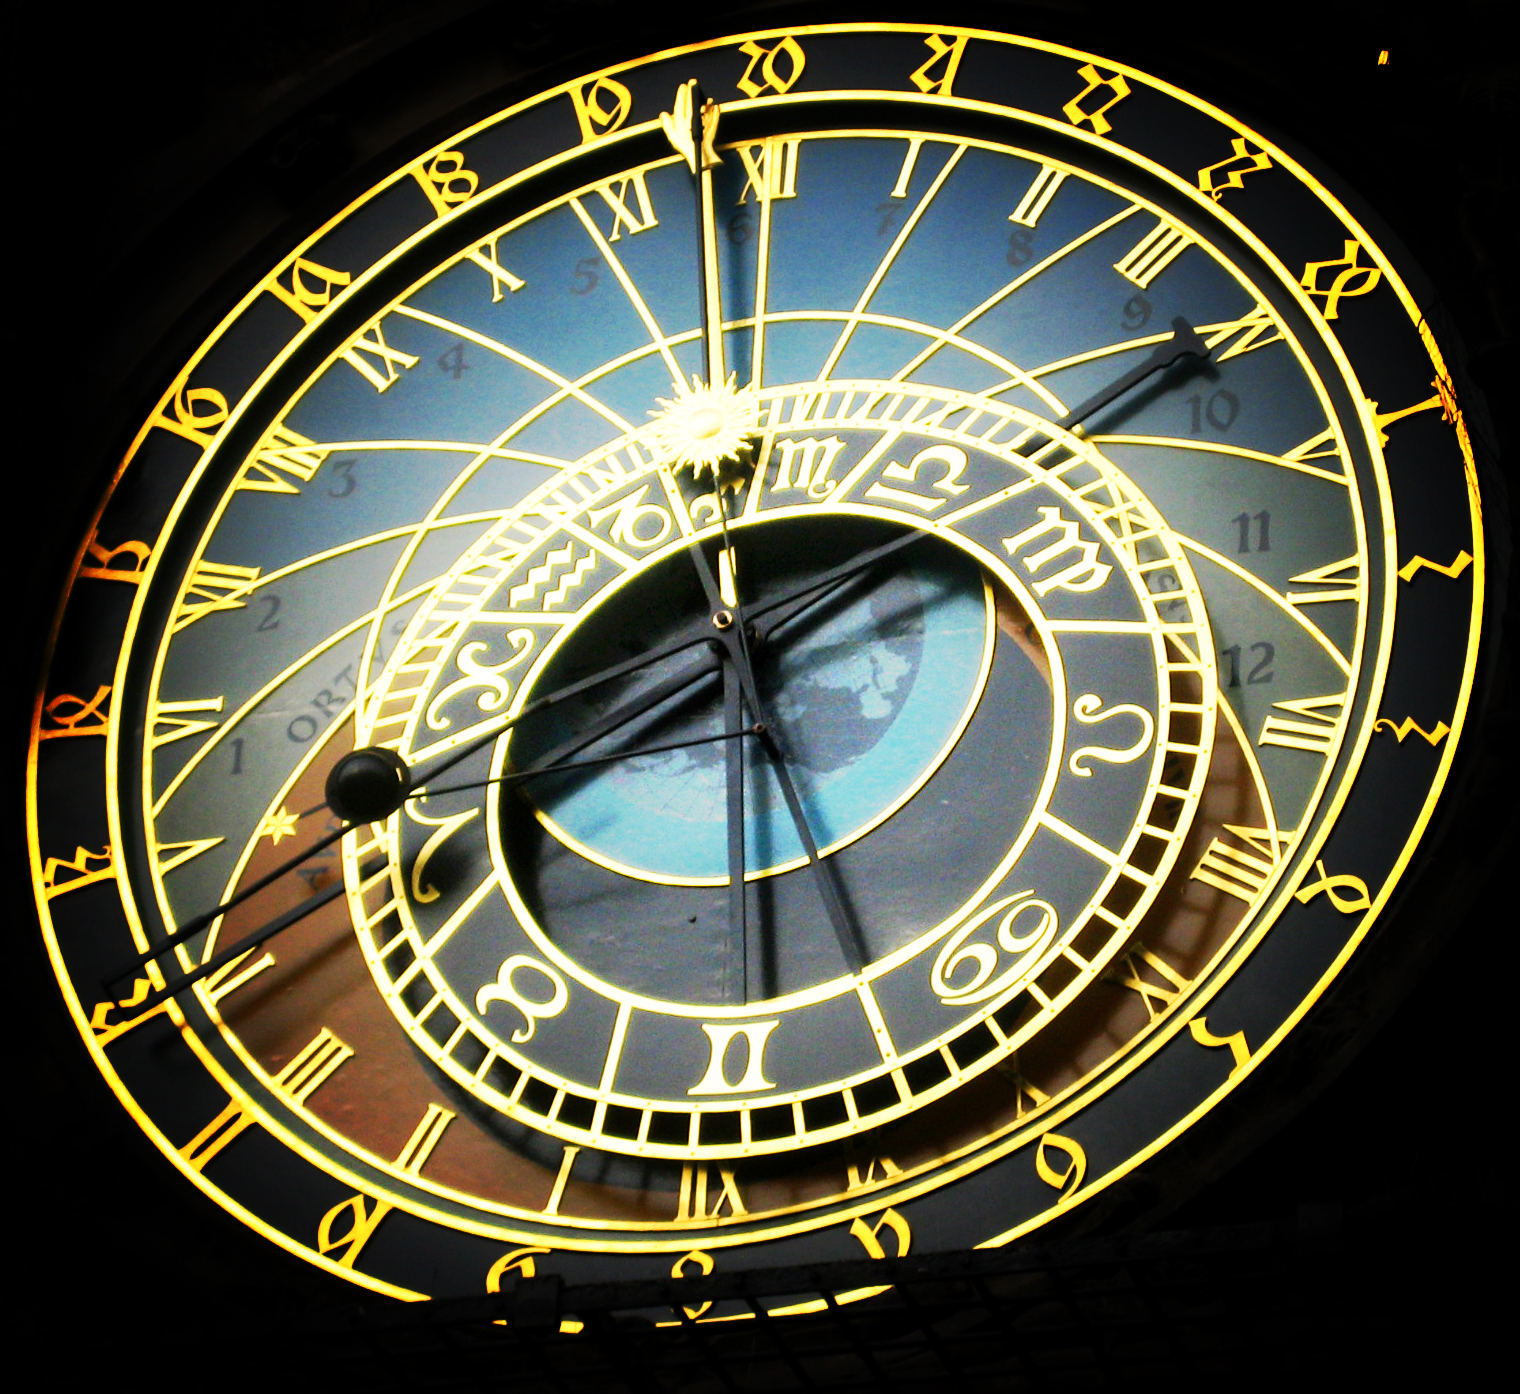 Astronomical Clock Face via Wikimedia Commons http://commons.wikimedia.org/wiki/File%3AAstronomical_Clock_Face.jpg